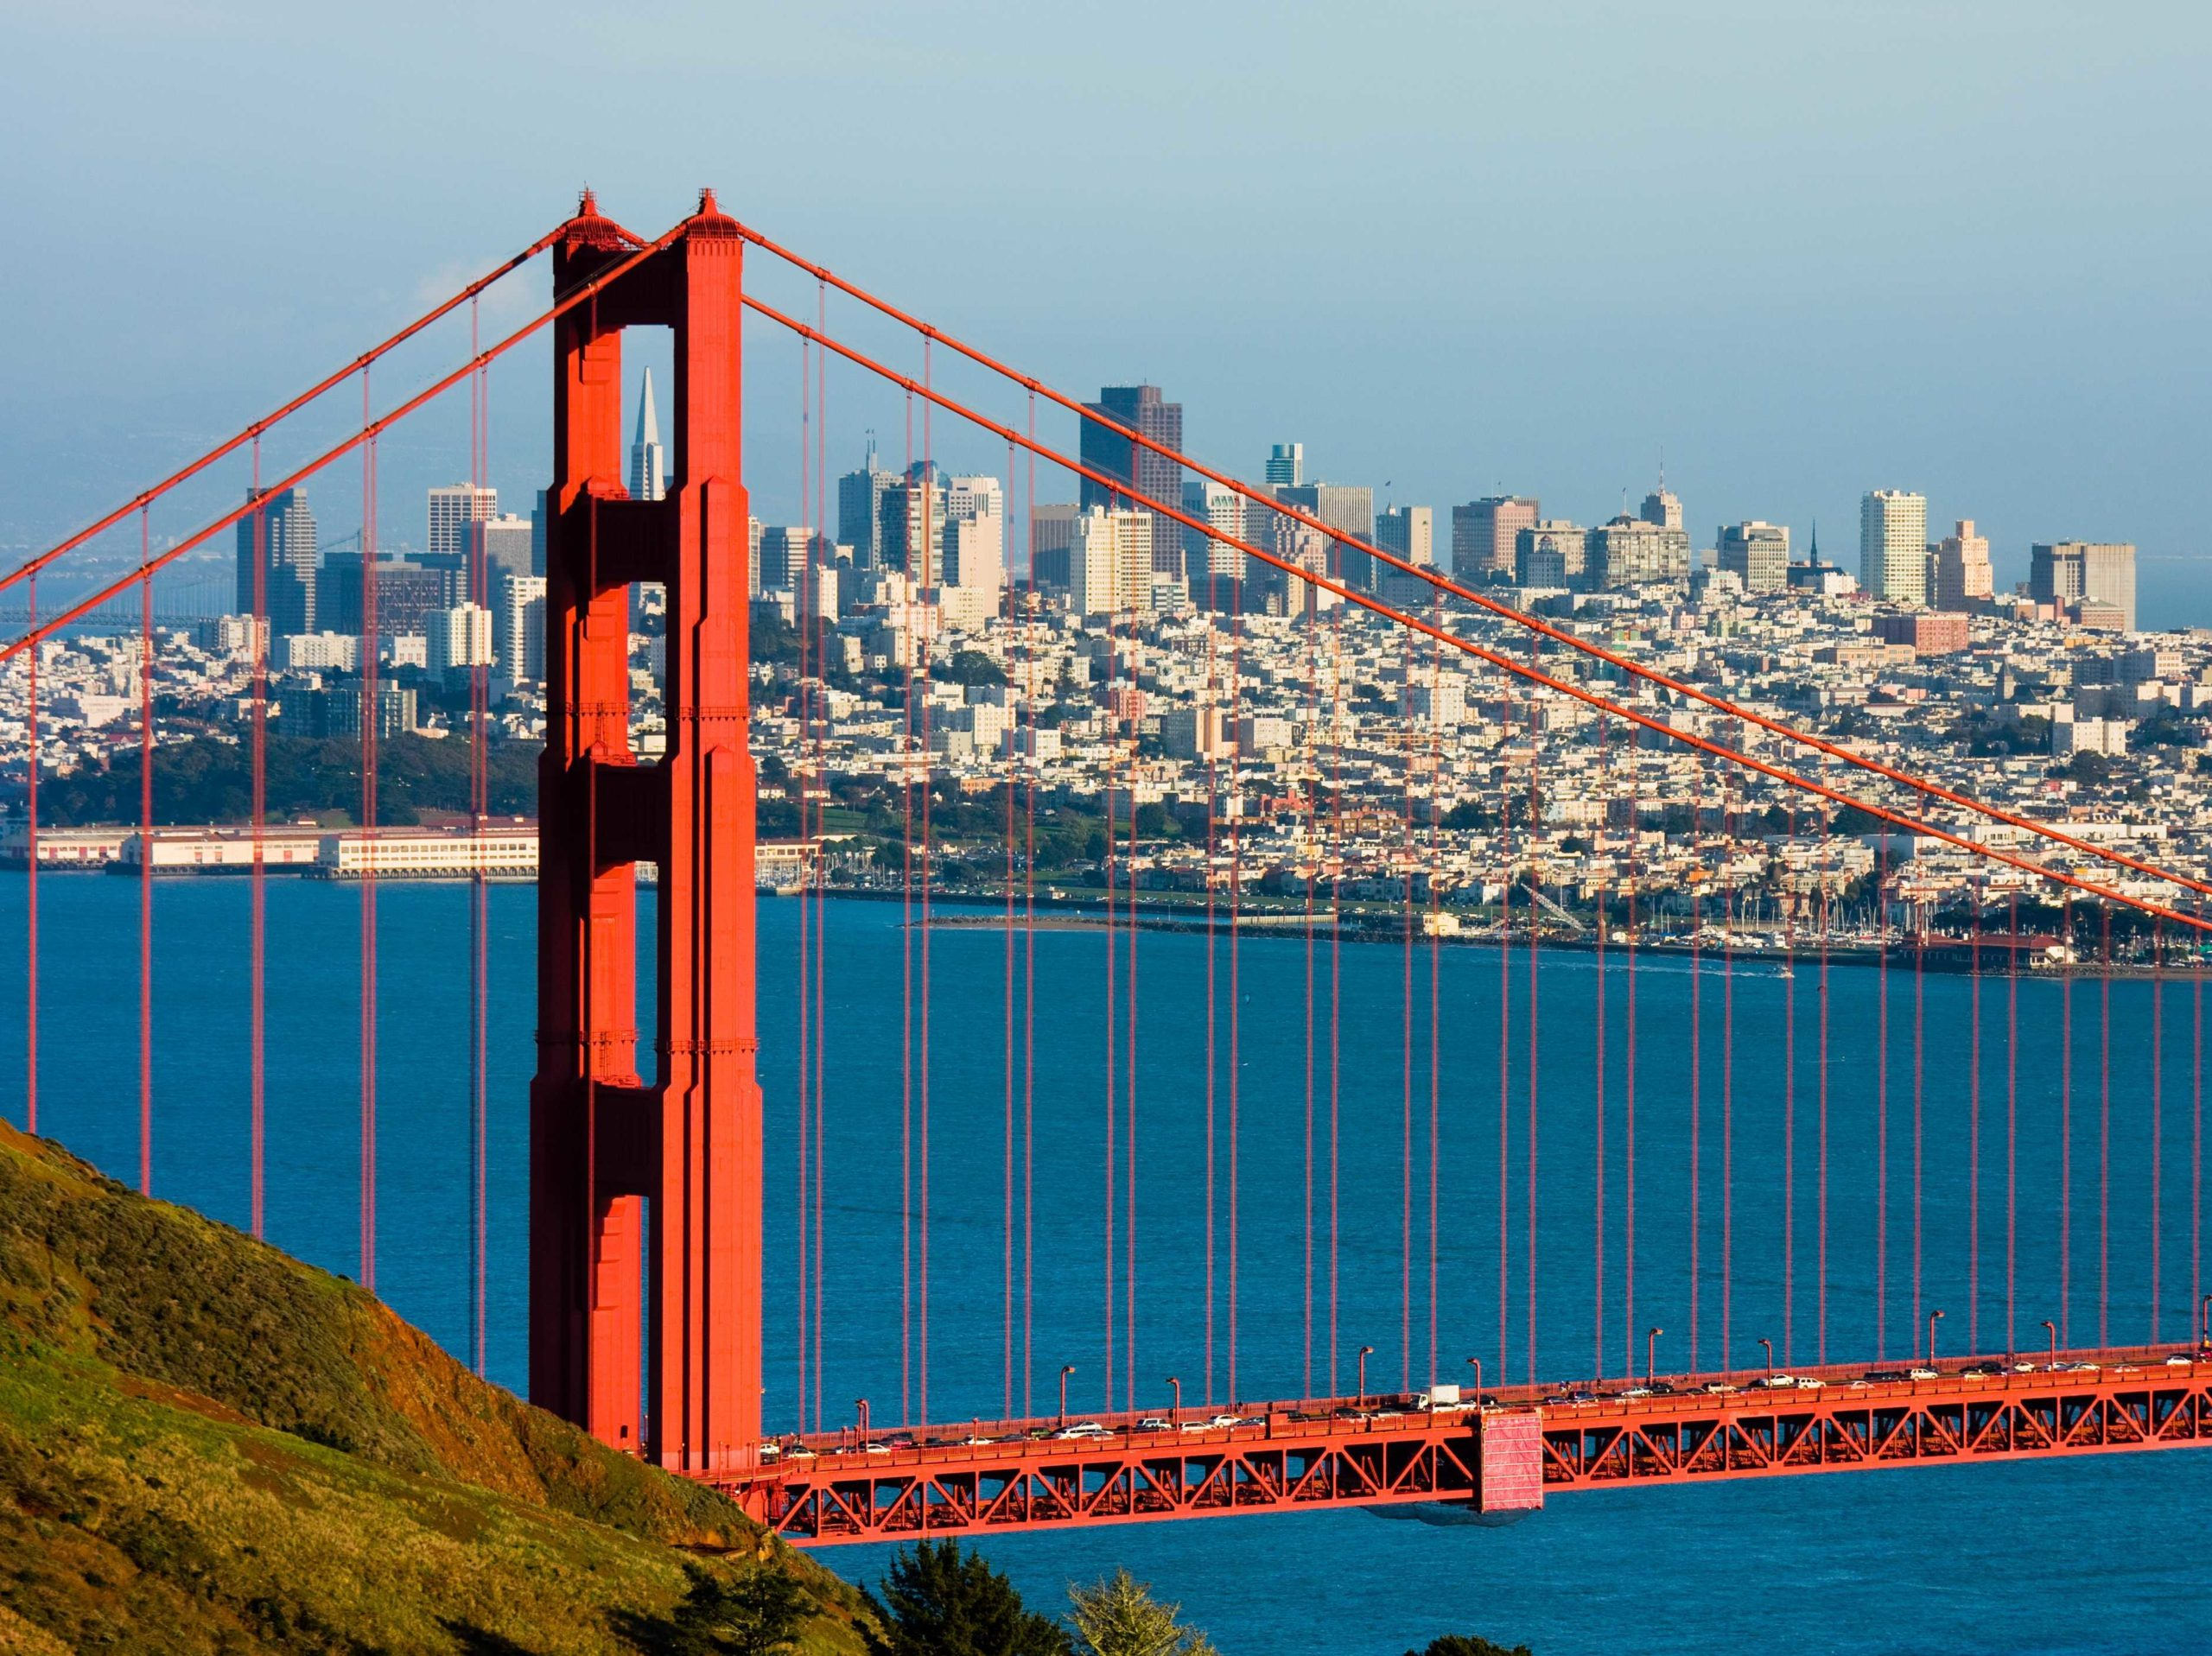 AIR CANADA LAUNCHING DAILY NON STOP FLIGHTS FROM EDMONTON TO SAN FRANCISCO